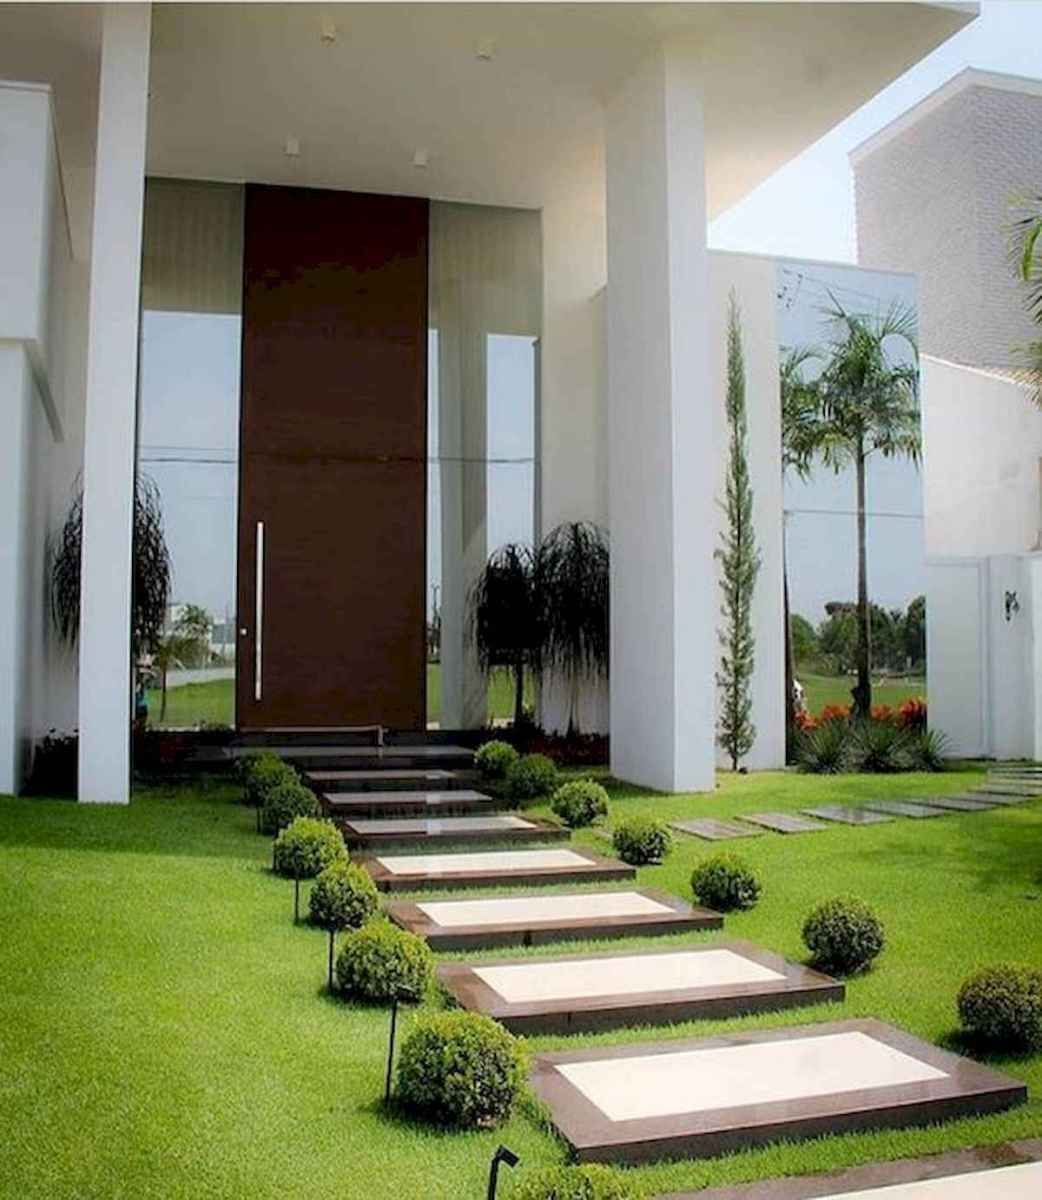 90 Simple And Beautiful Front Yard Landscaping Ideas On A Budget 23 Modern Landscaping Modern Front Yard Backyard Landscaping Modern backyard ideas on a budget